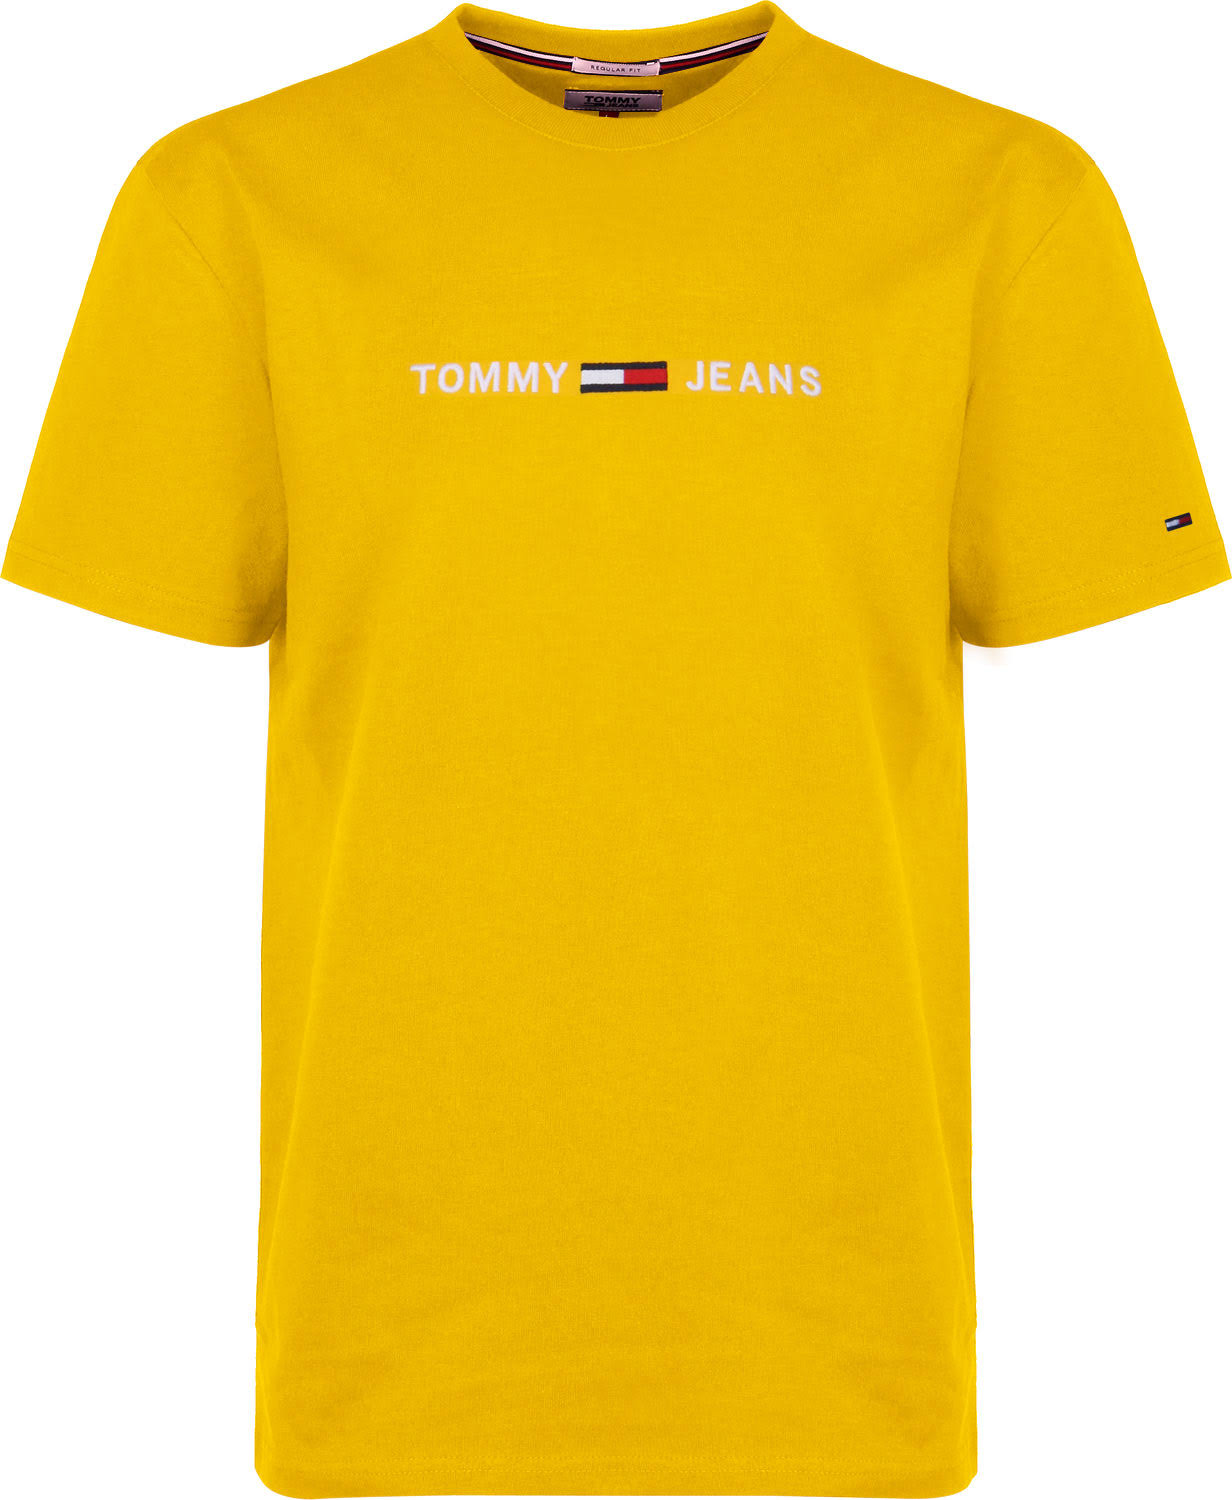 Tommy Tommy Jeans Jeans Small Text Yellow 2HED9WIY